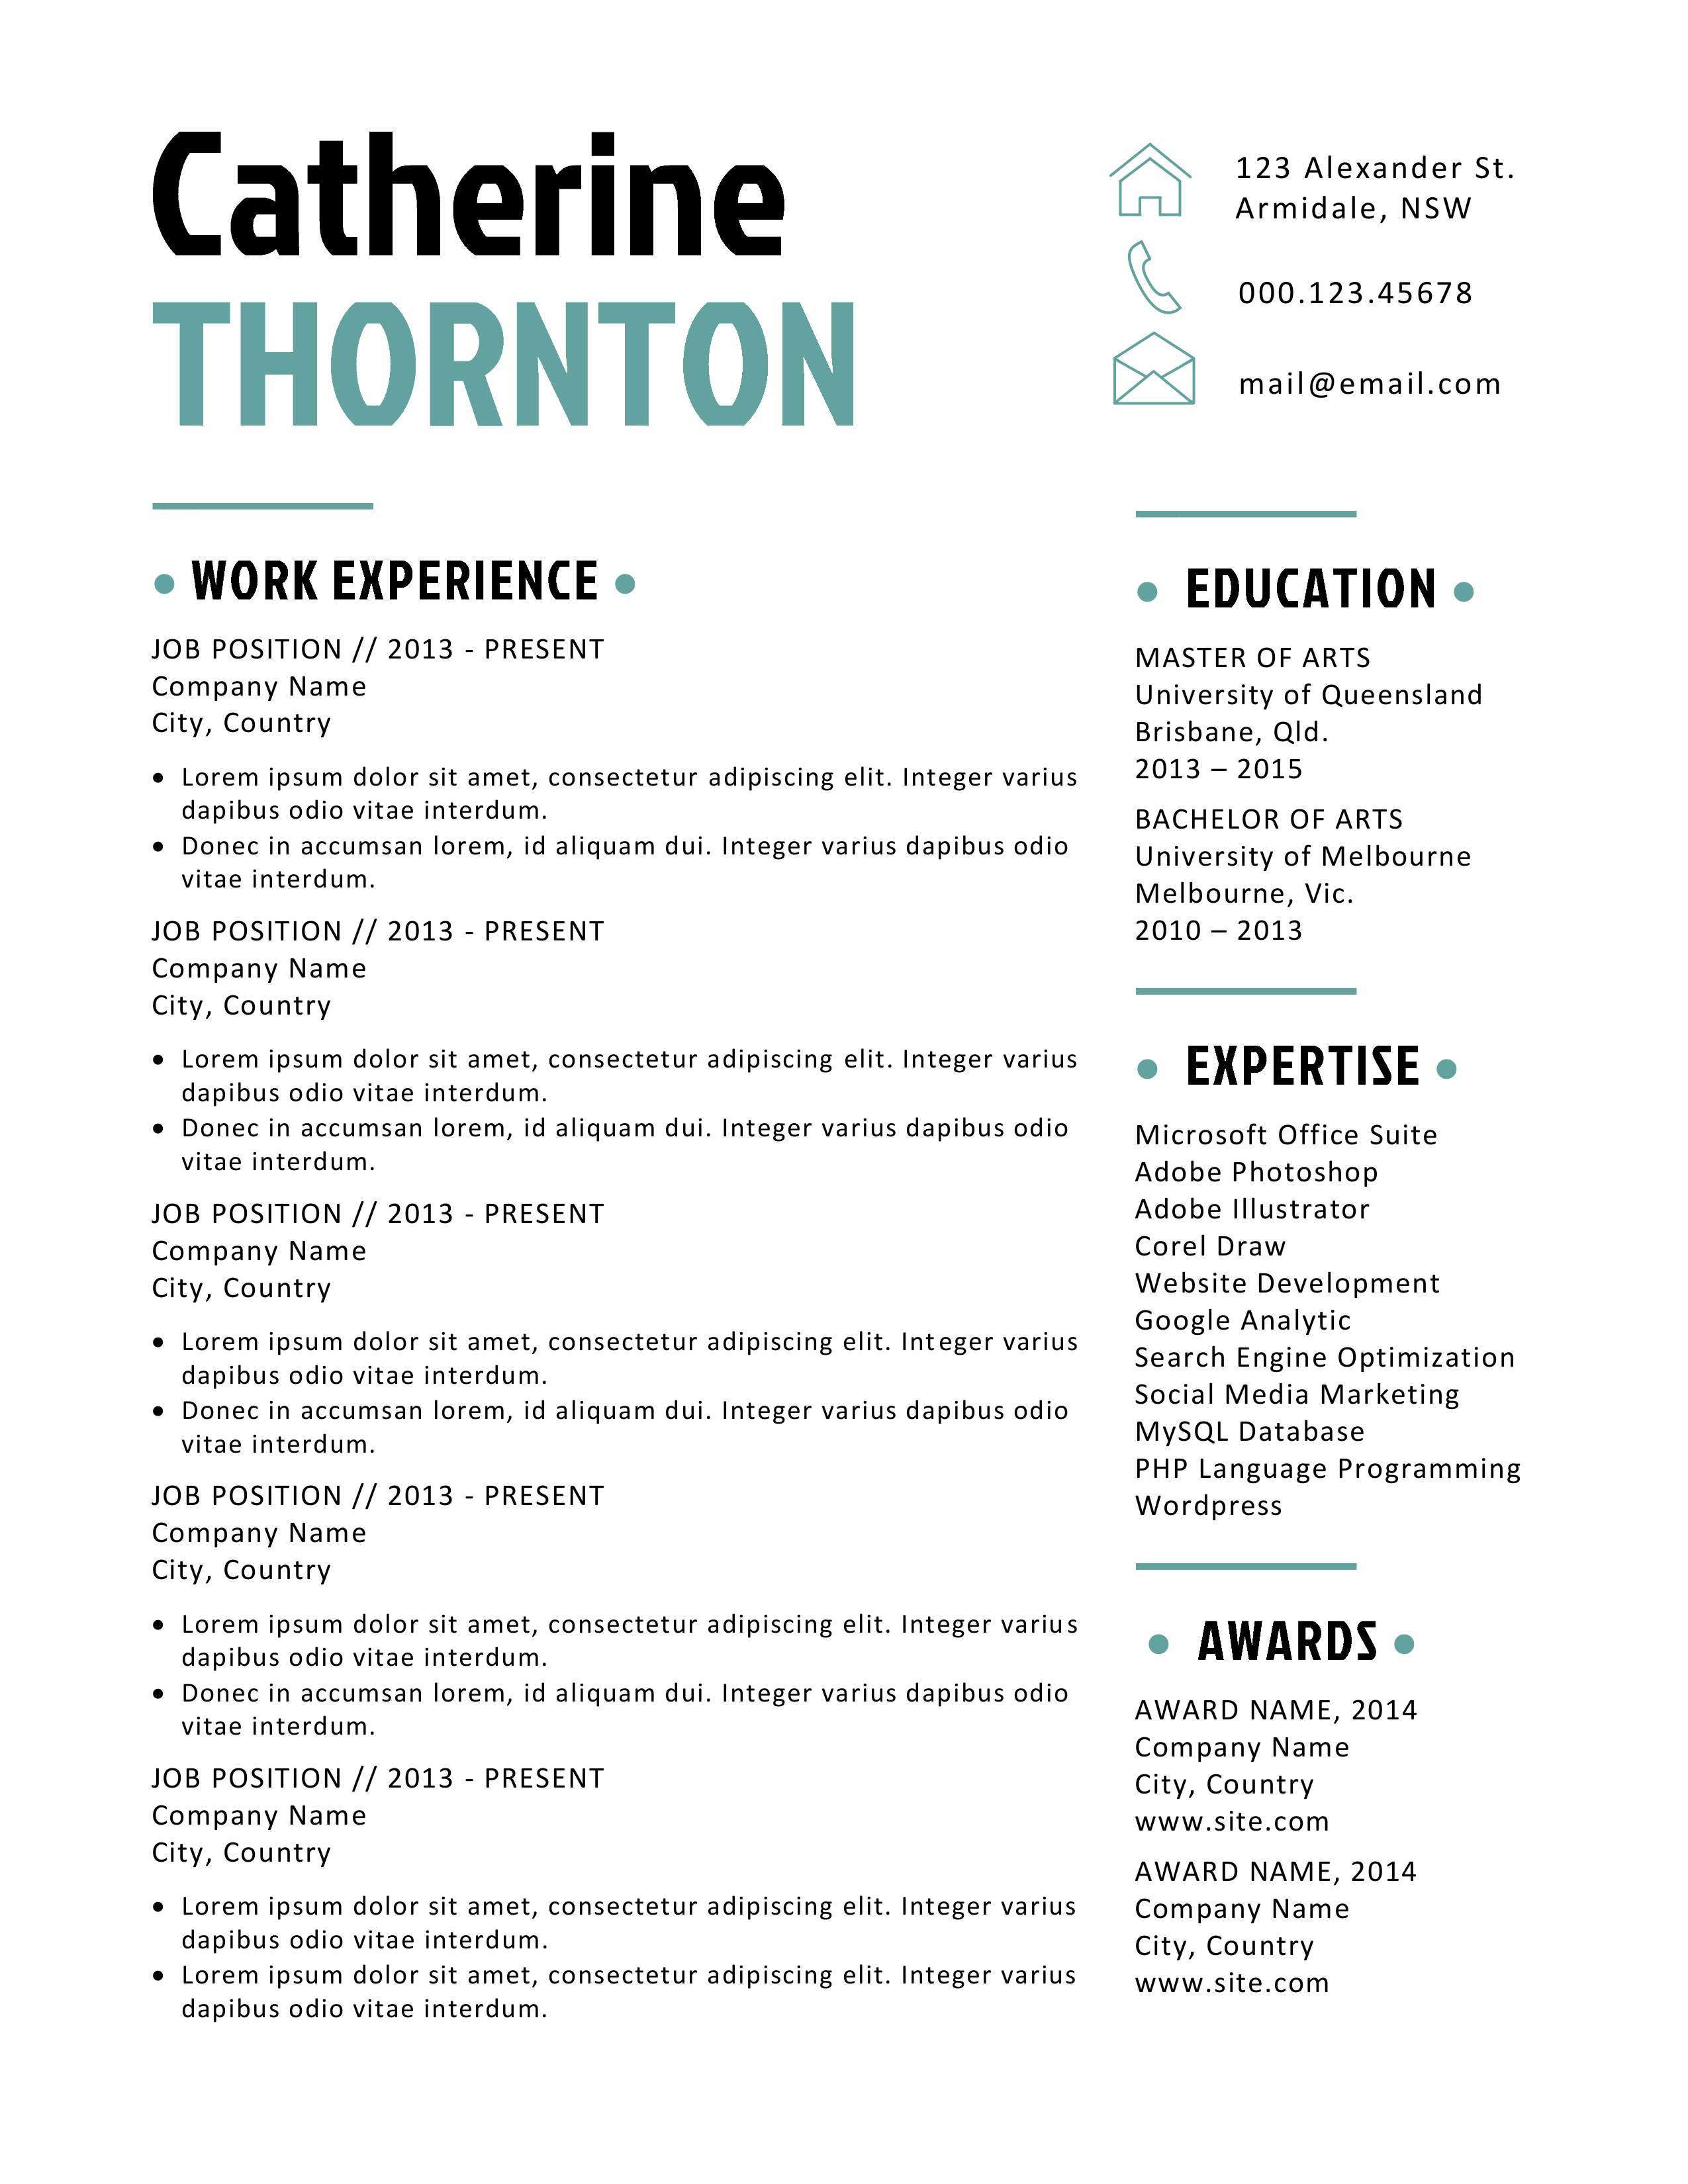 bold 2 in 1 word resume resume templates on creative market